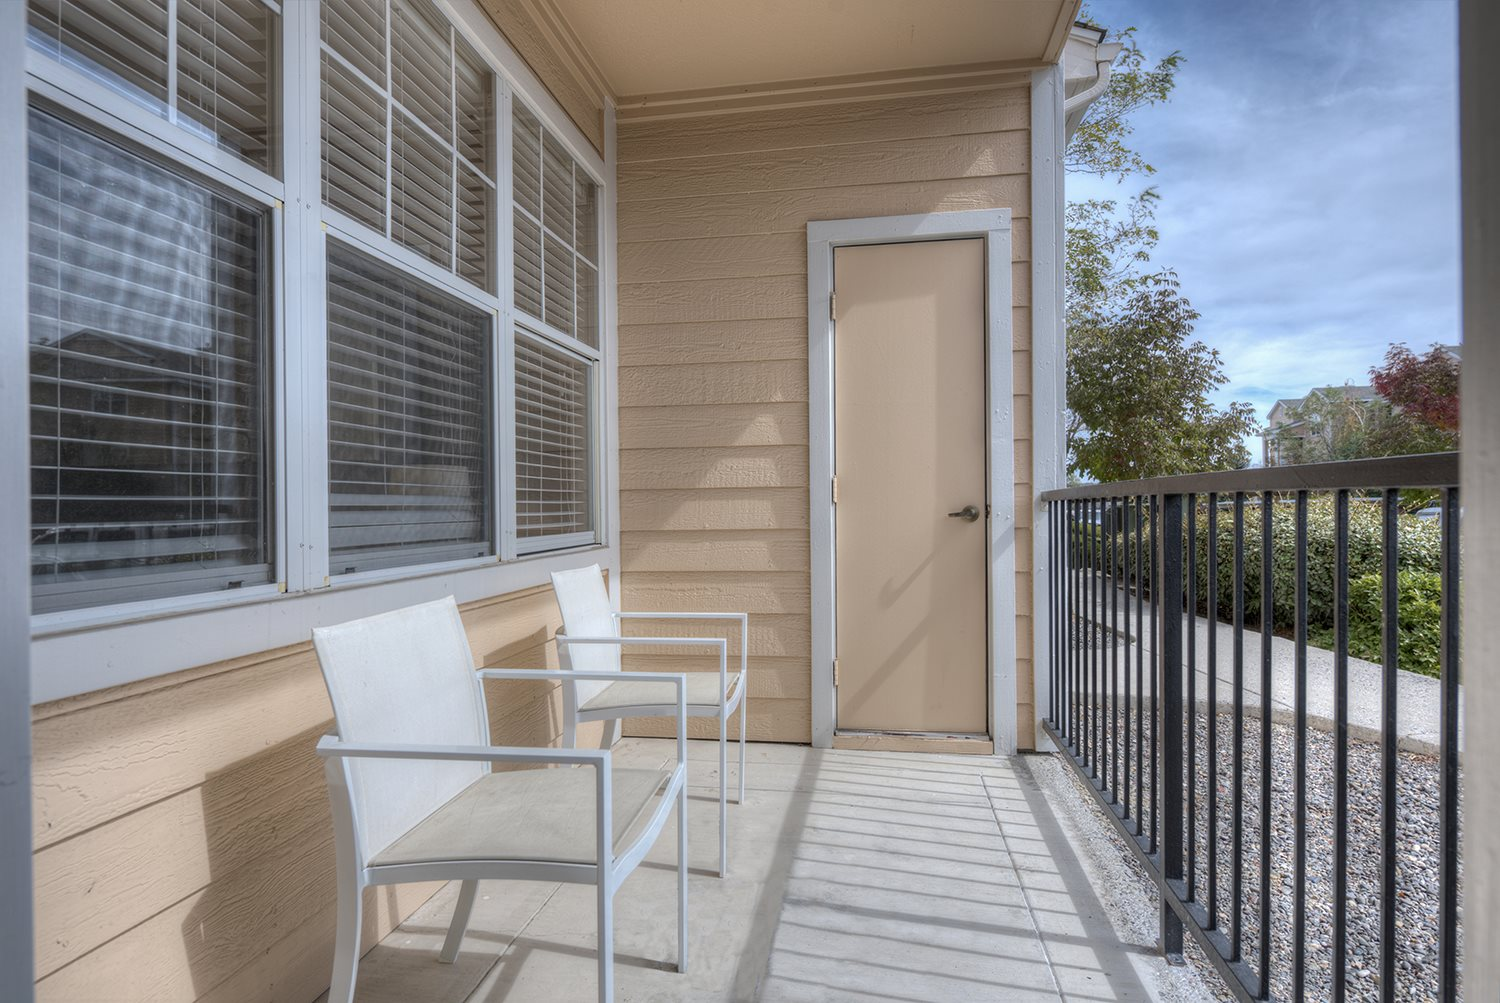 Patio/Balcony at Manzanita Gate Apartment Homes, 2475 Robb Drive, NV